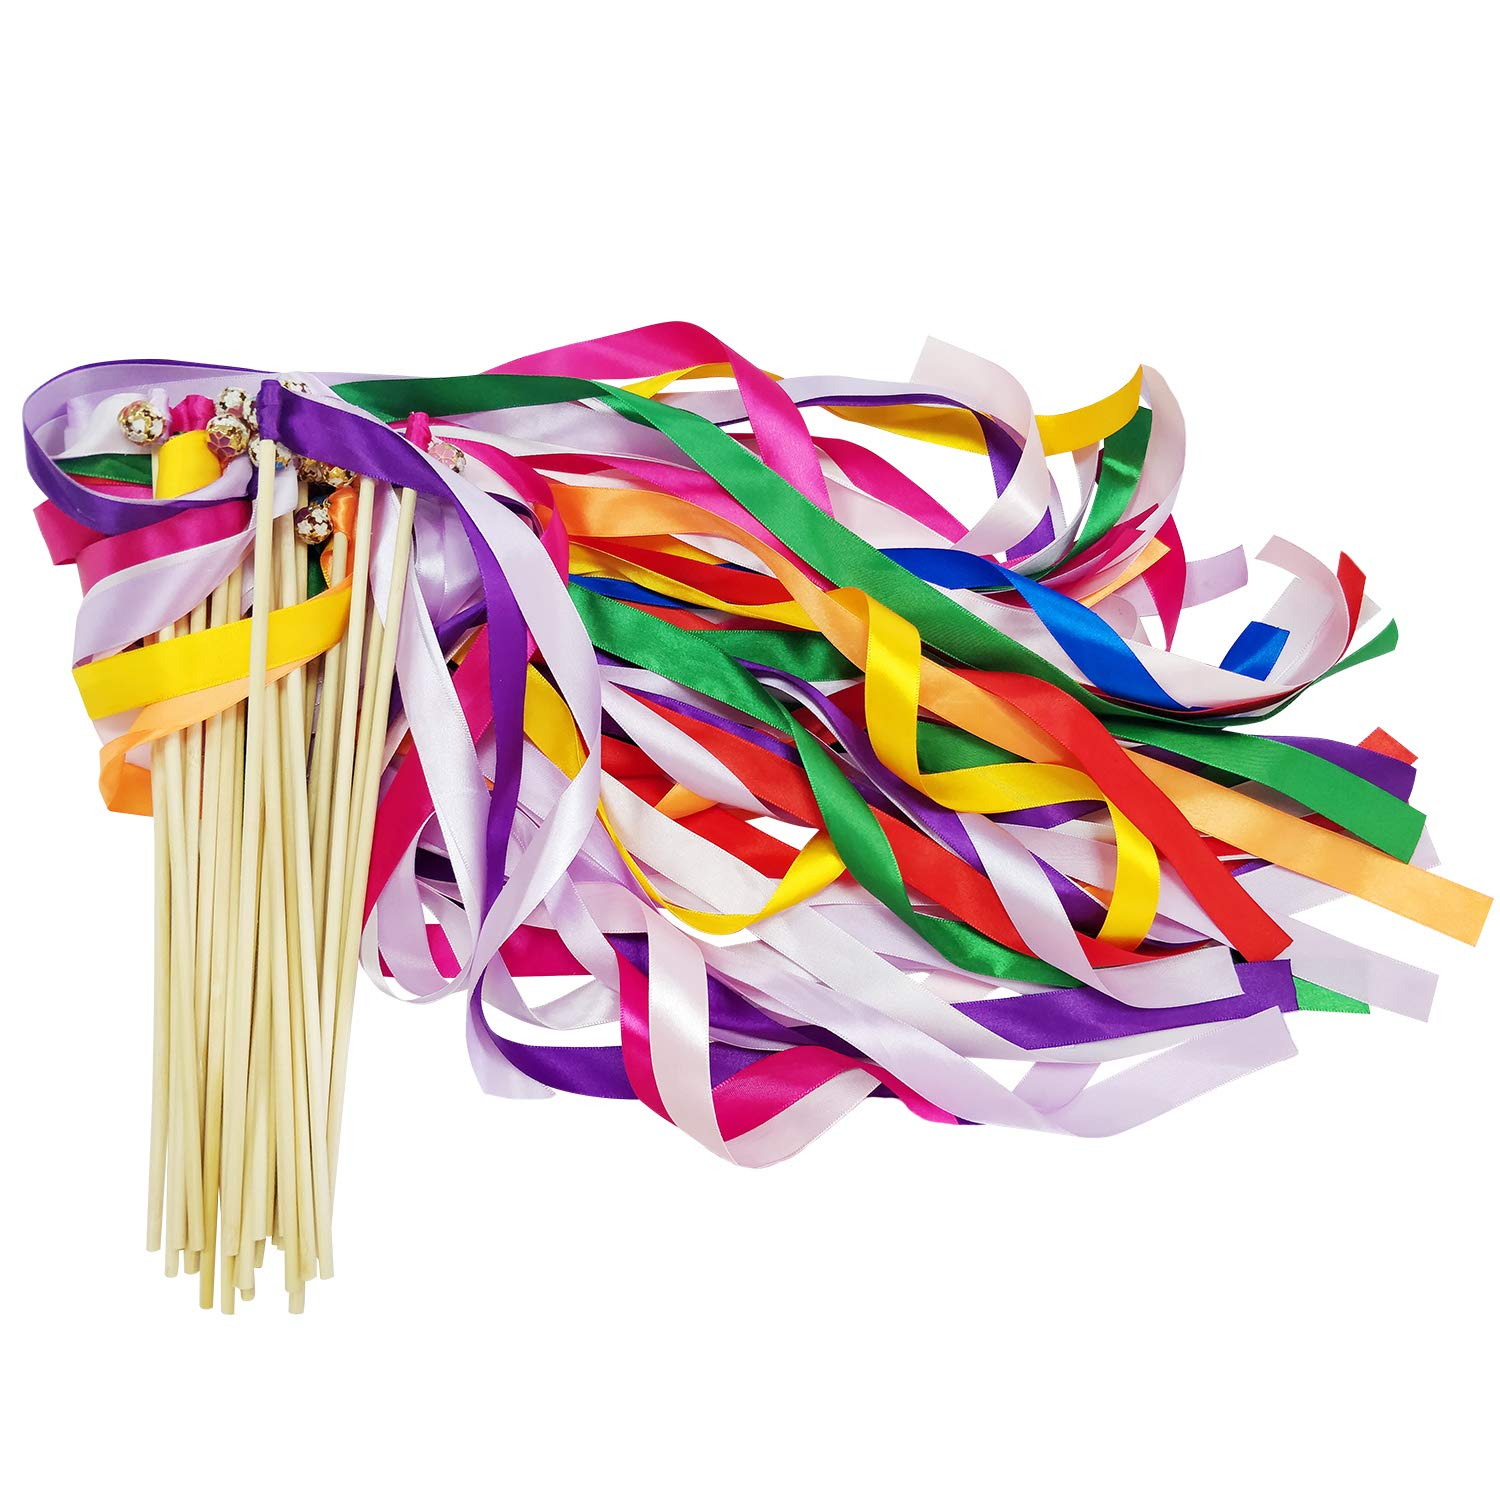 CODOHI Silk Ribbons Wish Wand Fairy Sticks,Wedding Party Favor(50 Pack) -Mix Color